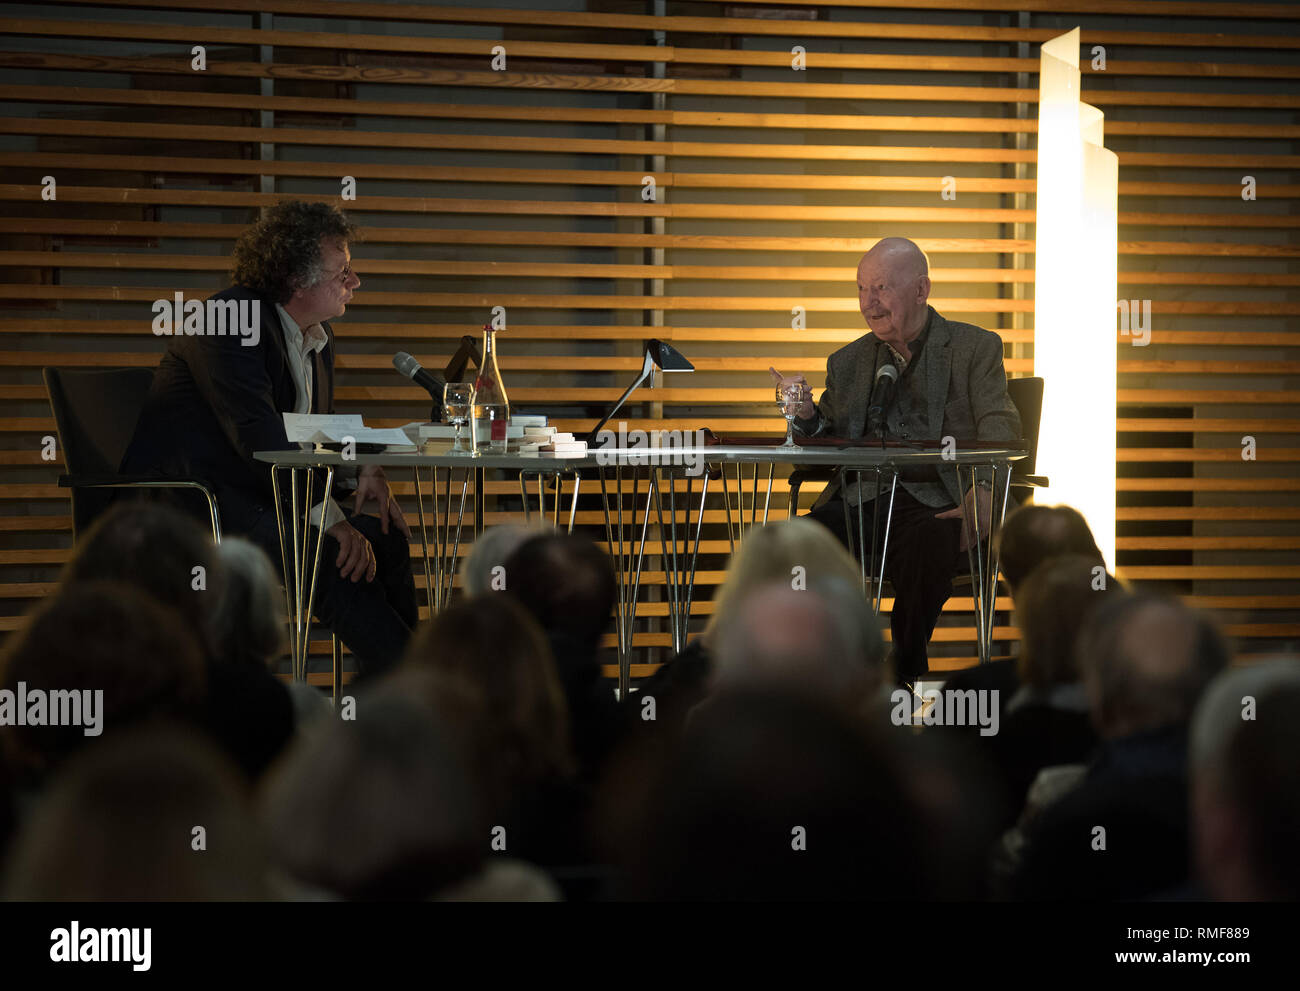 Berlin, Germany. 14th Feb, 2019. The writer Günter Kunert (r) talks to the writer Ingo Schulze about his book 'Die zweite Frau' ('The Second Woman'), which has now been published by Wallenstein-Verlag, in the Schleswig-Holstein state representation. Kunert had written the novel almost 45 years ago, when he found the book unprintable in the GDR and had forgotten the manuscript in its hiding place. Credit: Soeren Stache/dpa/Alamy Live News - Stock Image